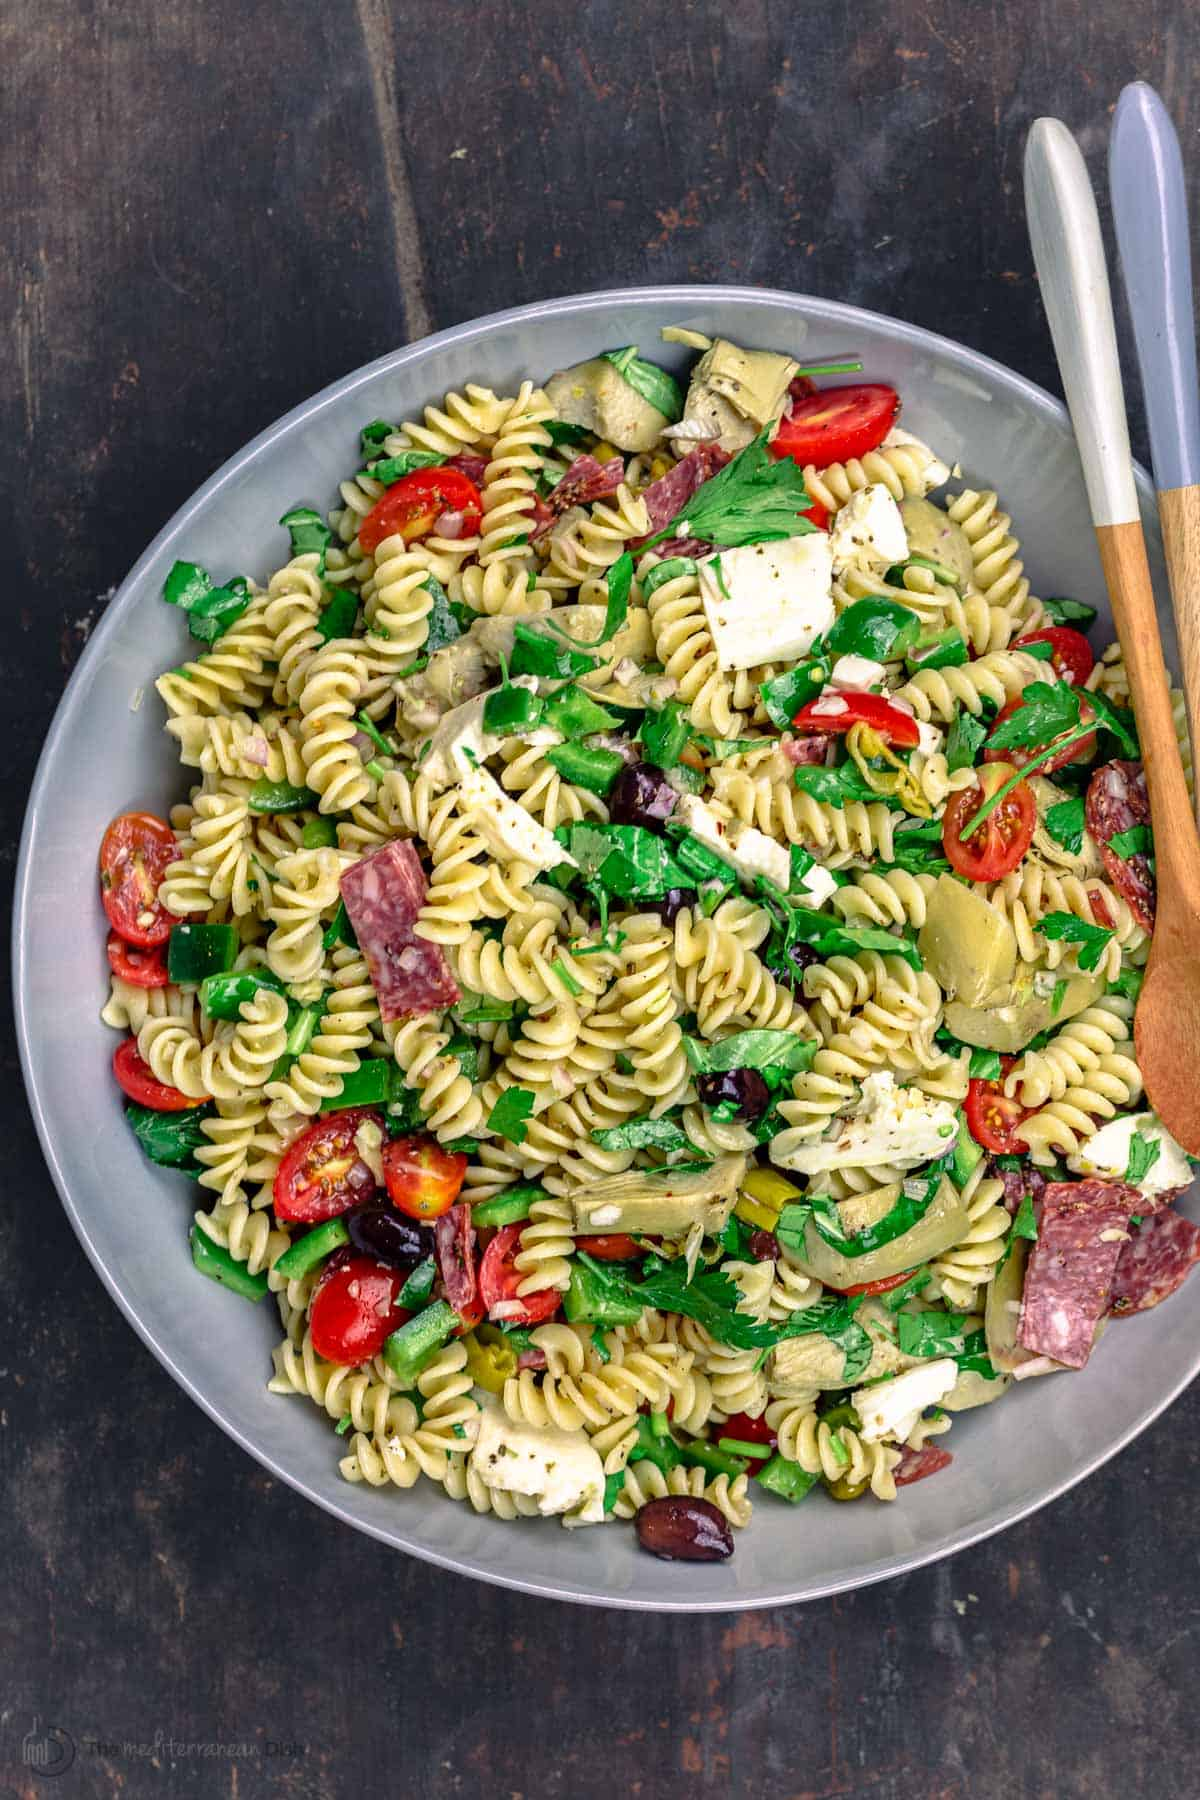 Italian pasta salad in a serving bowl